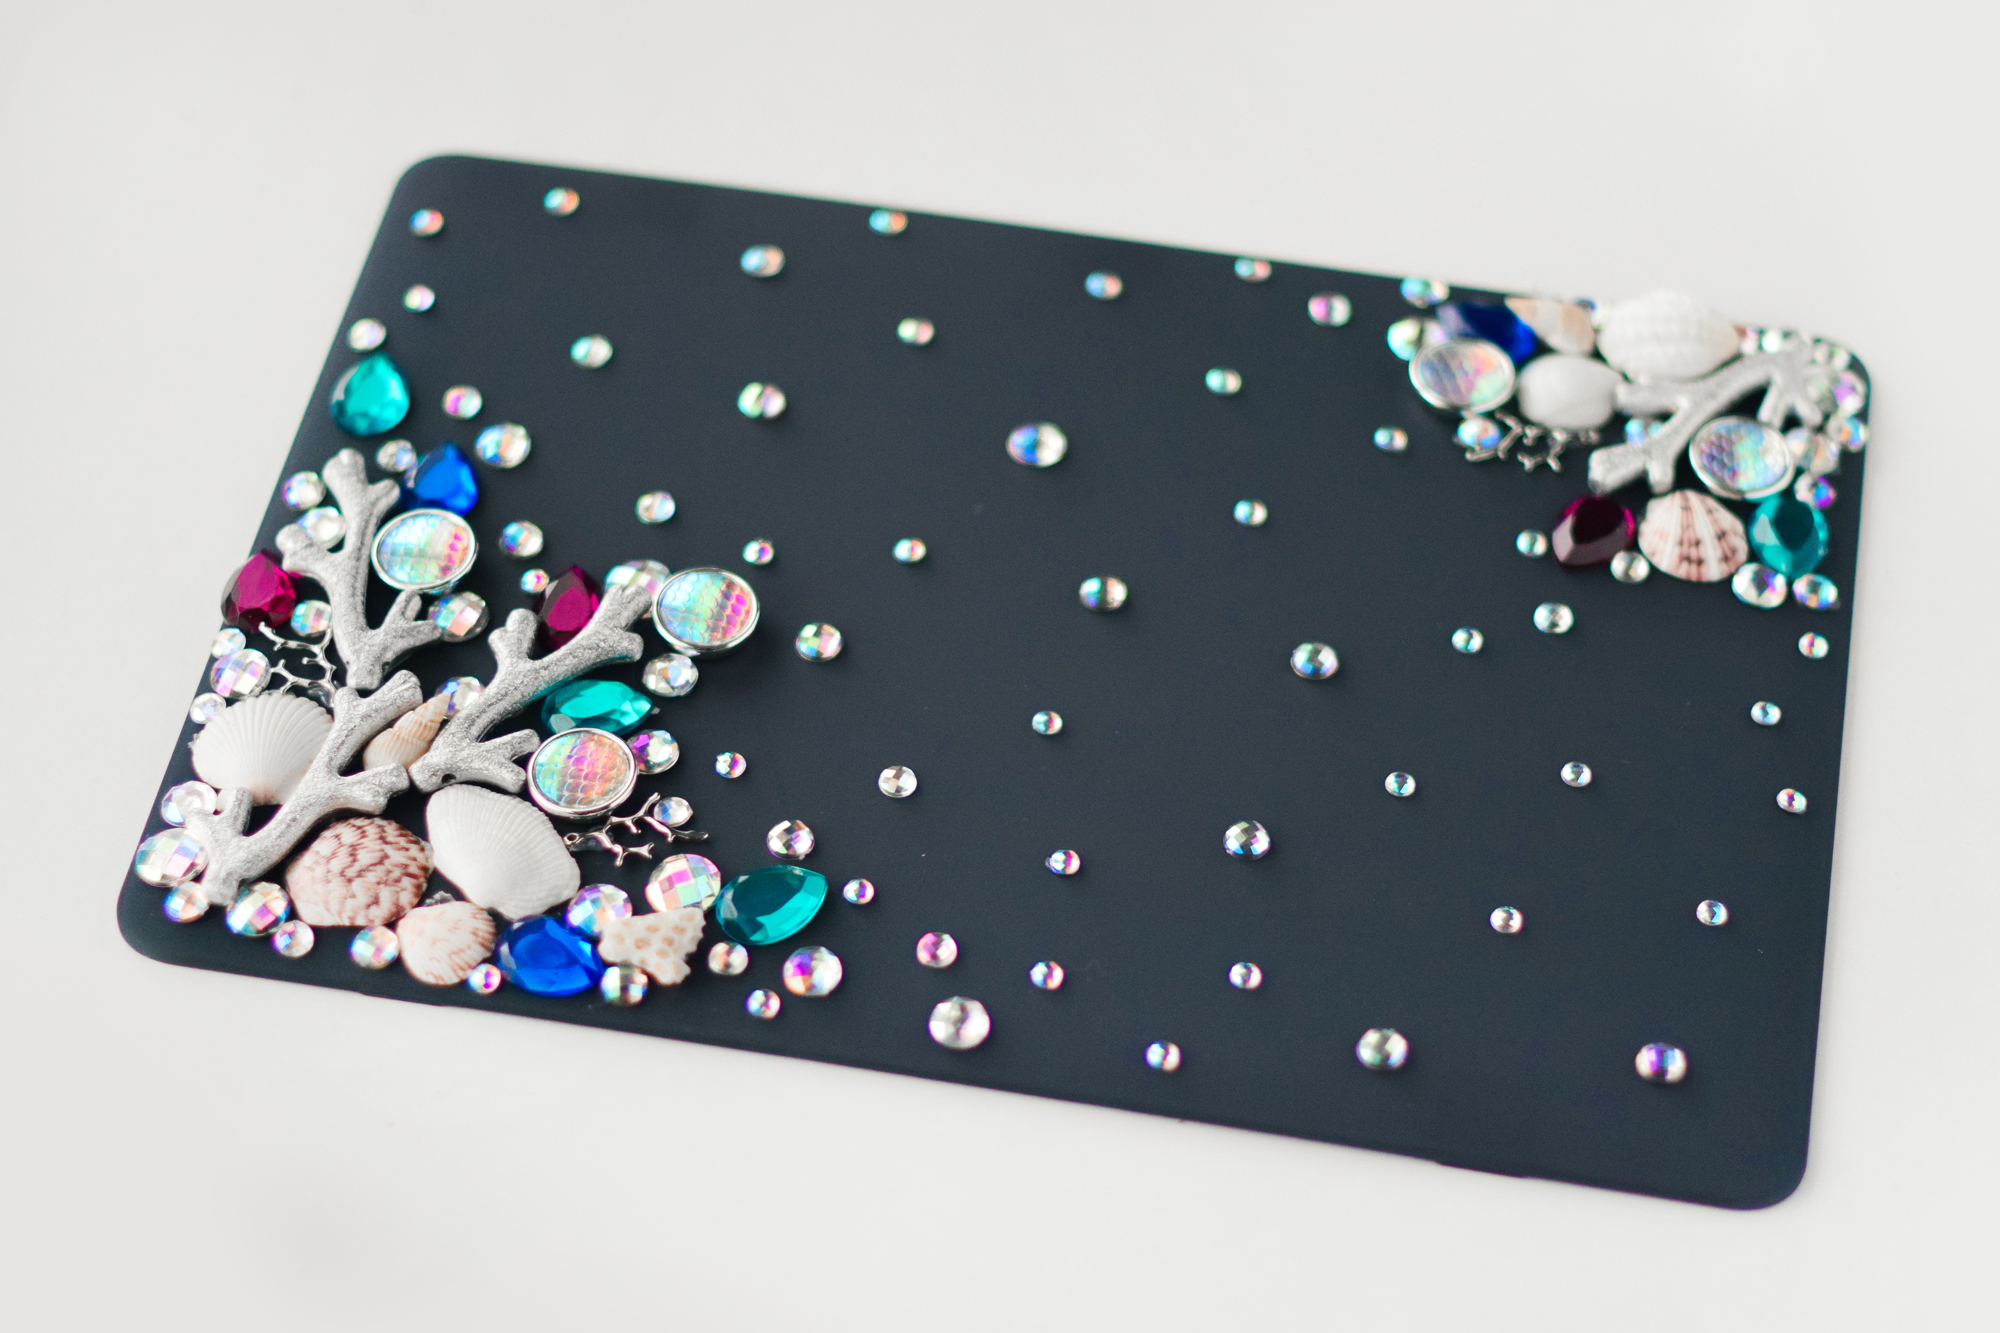 DIY Mermaid Laptop Cover - Quiet Lion Creations